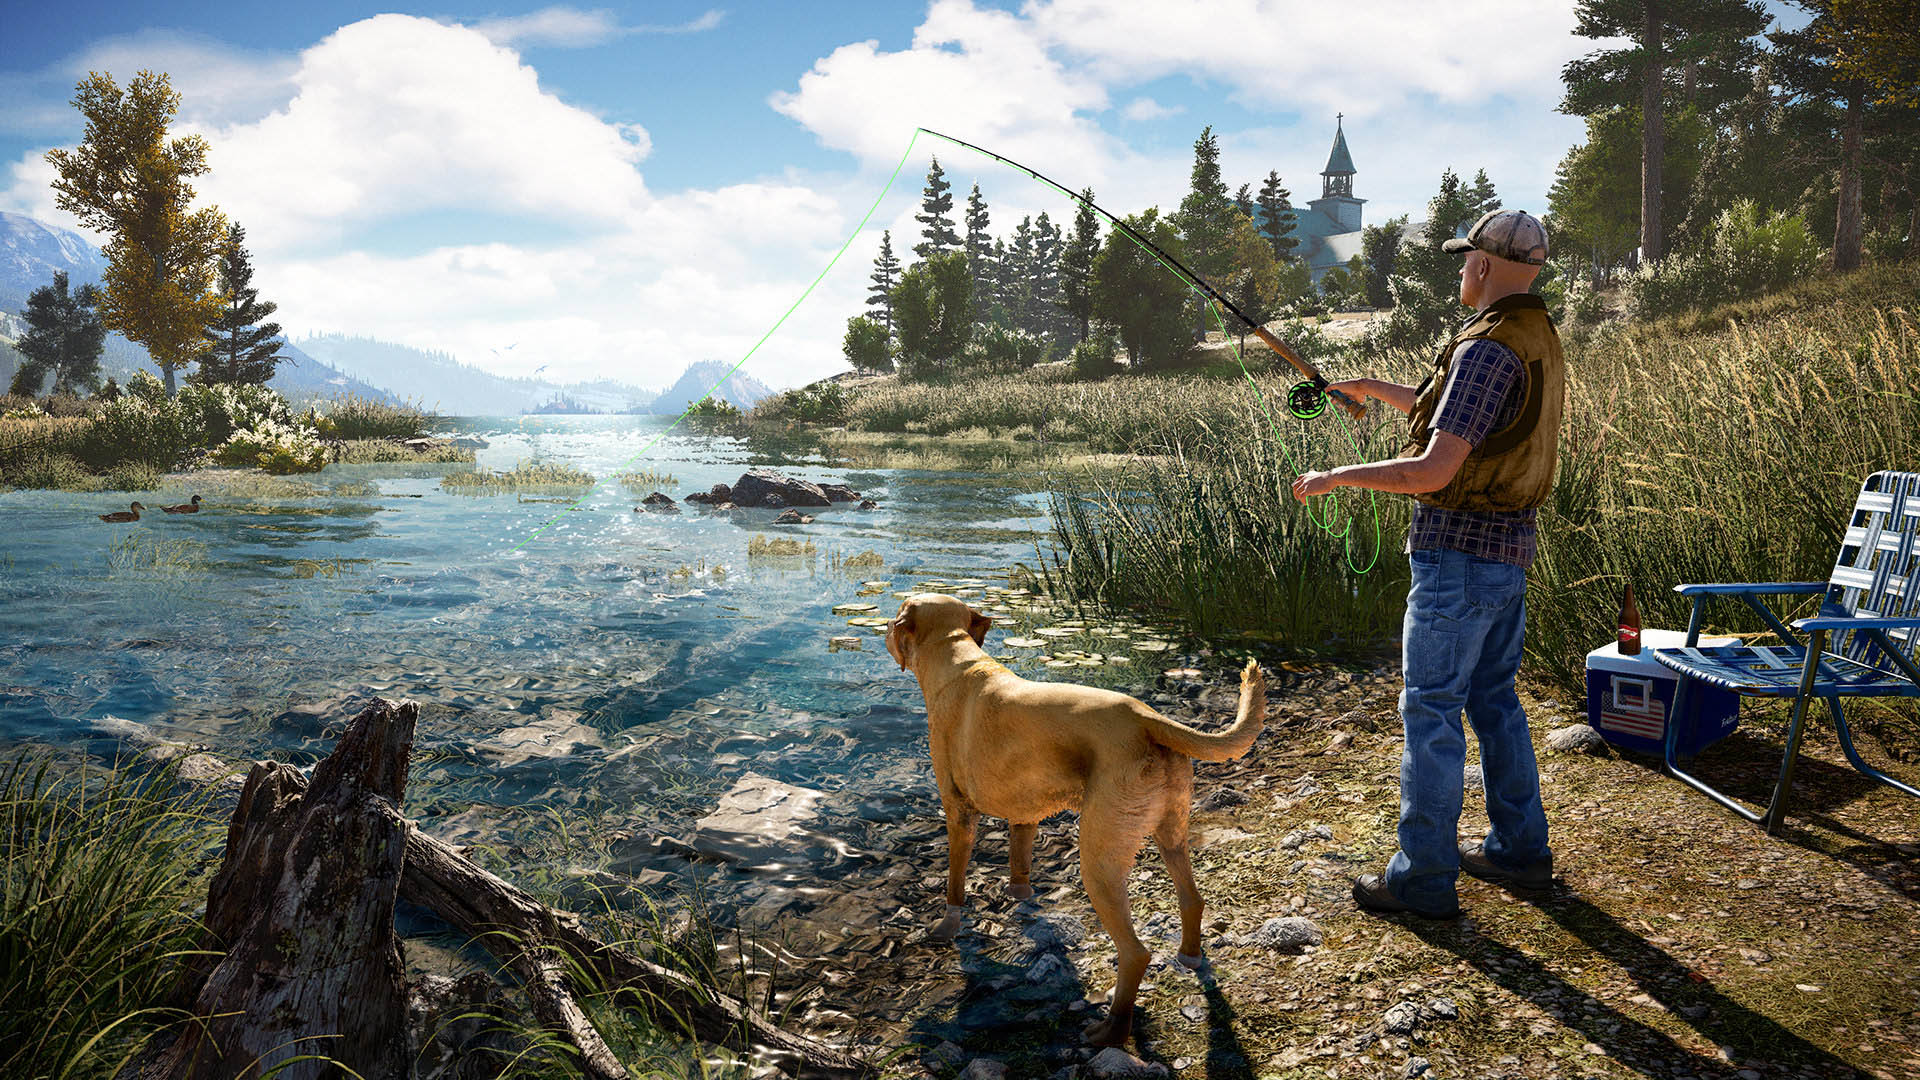 Fishing alongside your dog, Boomer, will be one way to get away from the trouble of killing cultists.